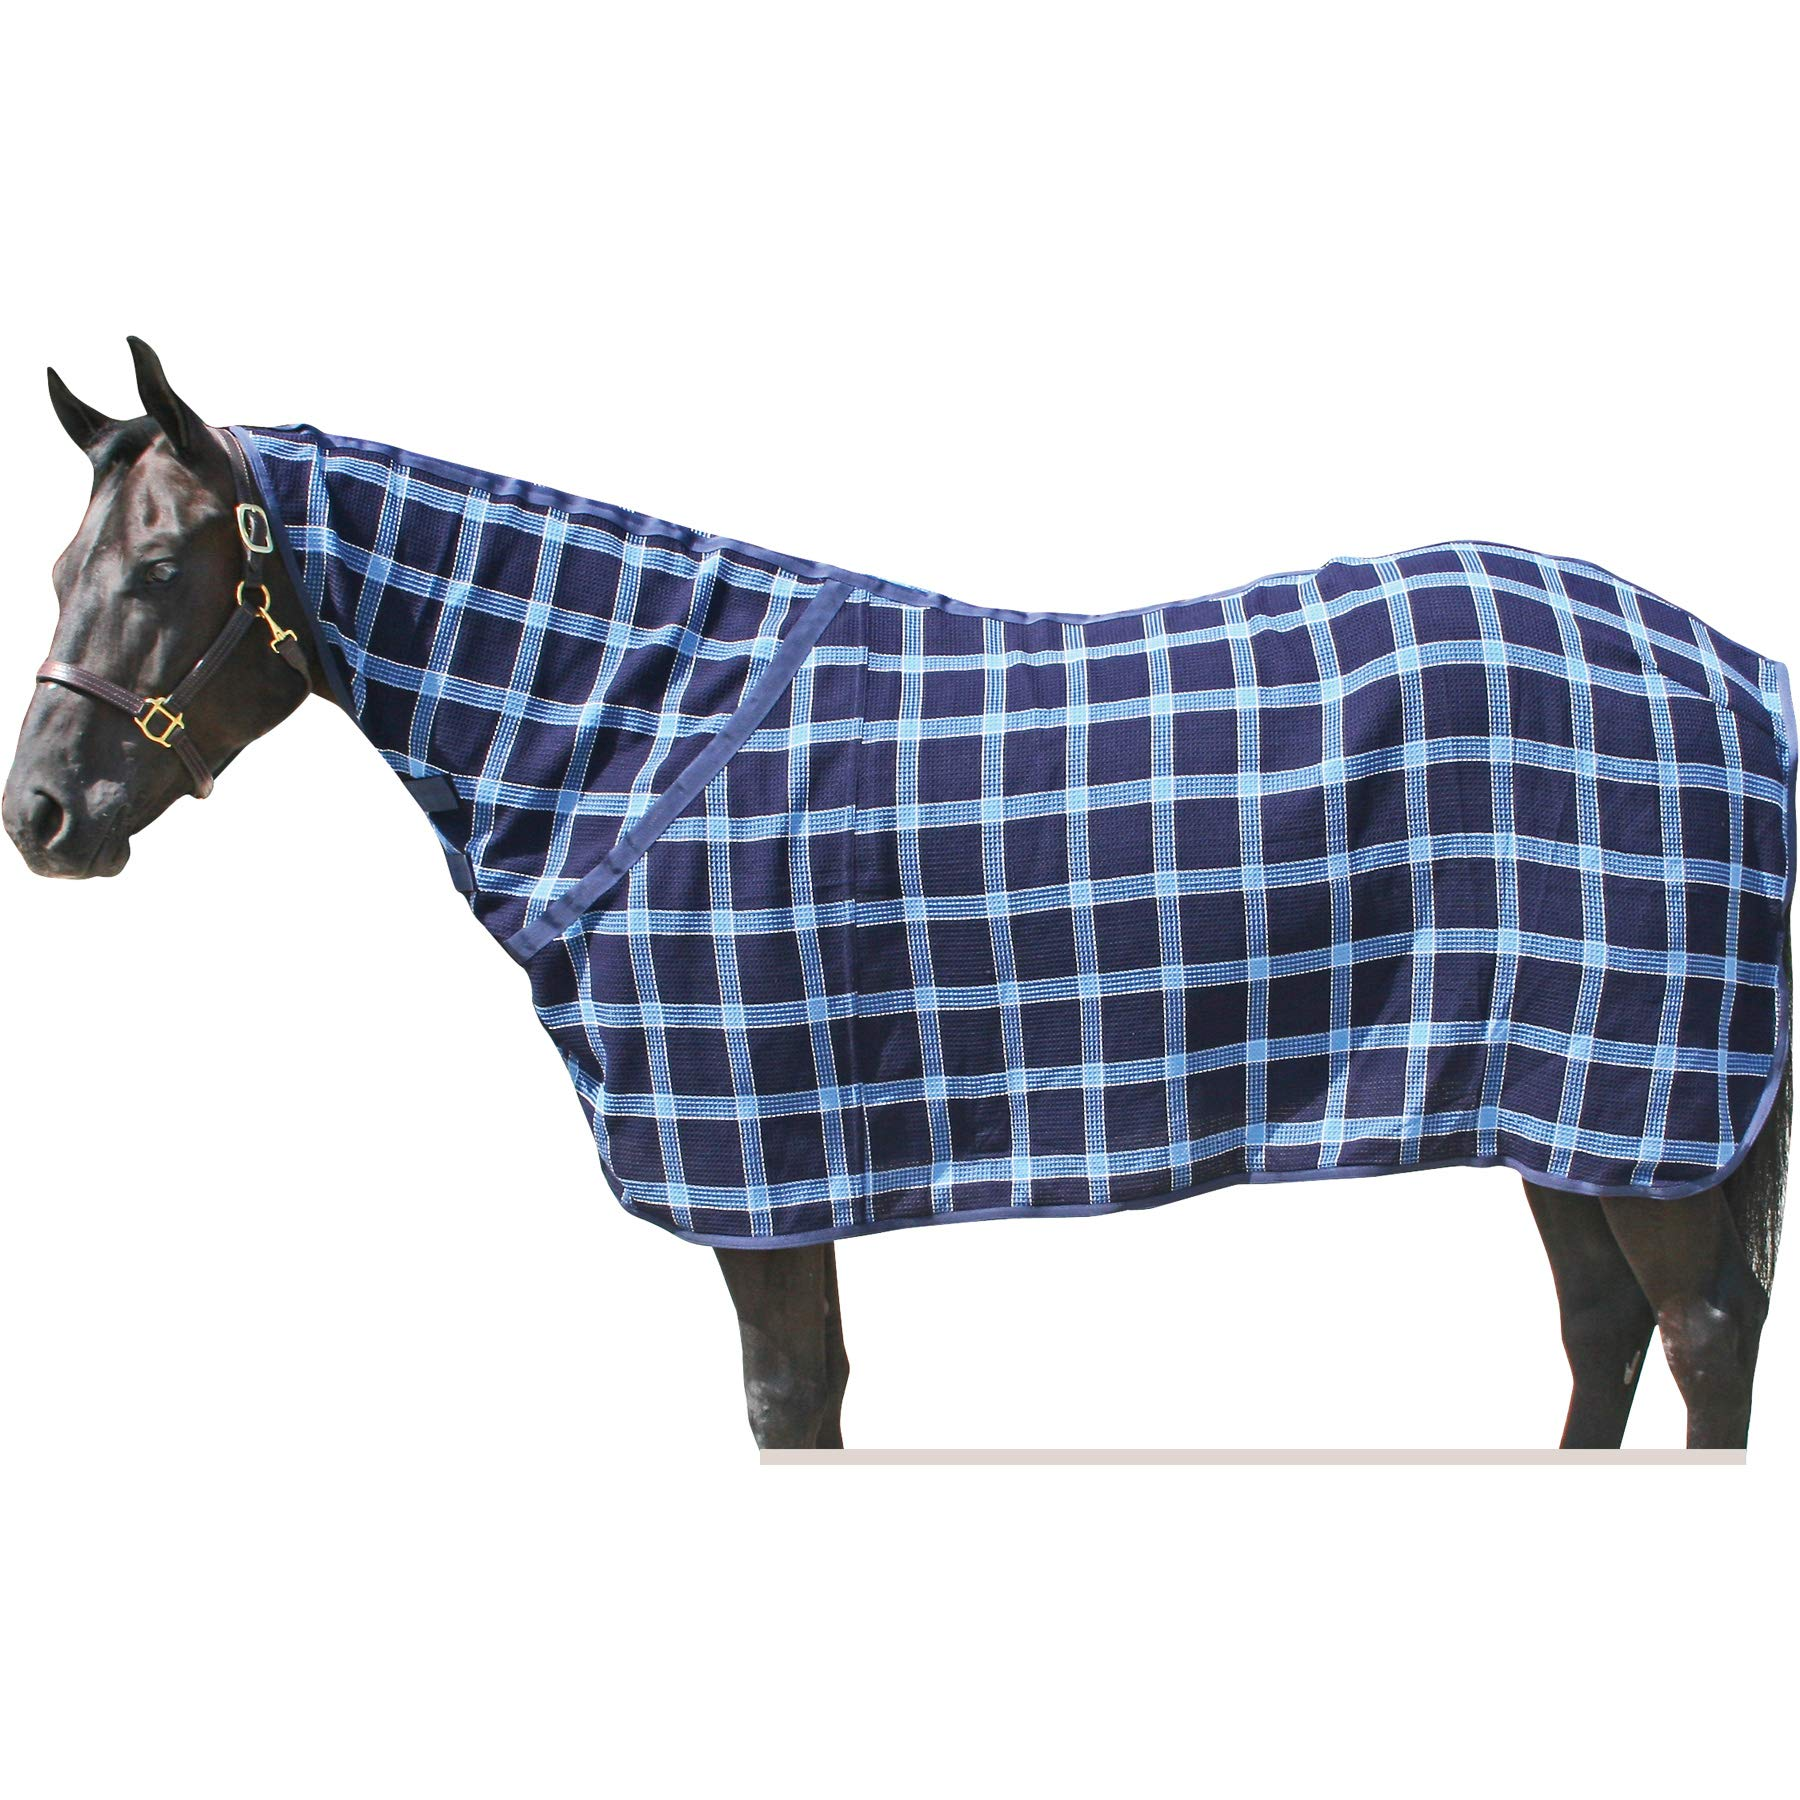 Schneiders Saddlery Dura-Tech Plaid Cashmelon Contour Cooler (Large, Blue Plaid)